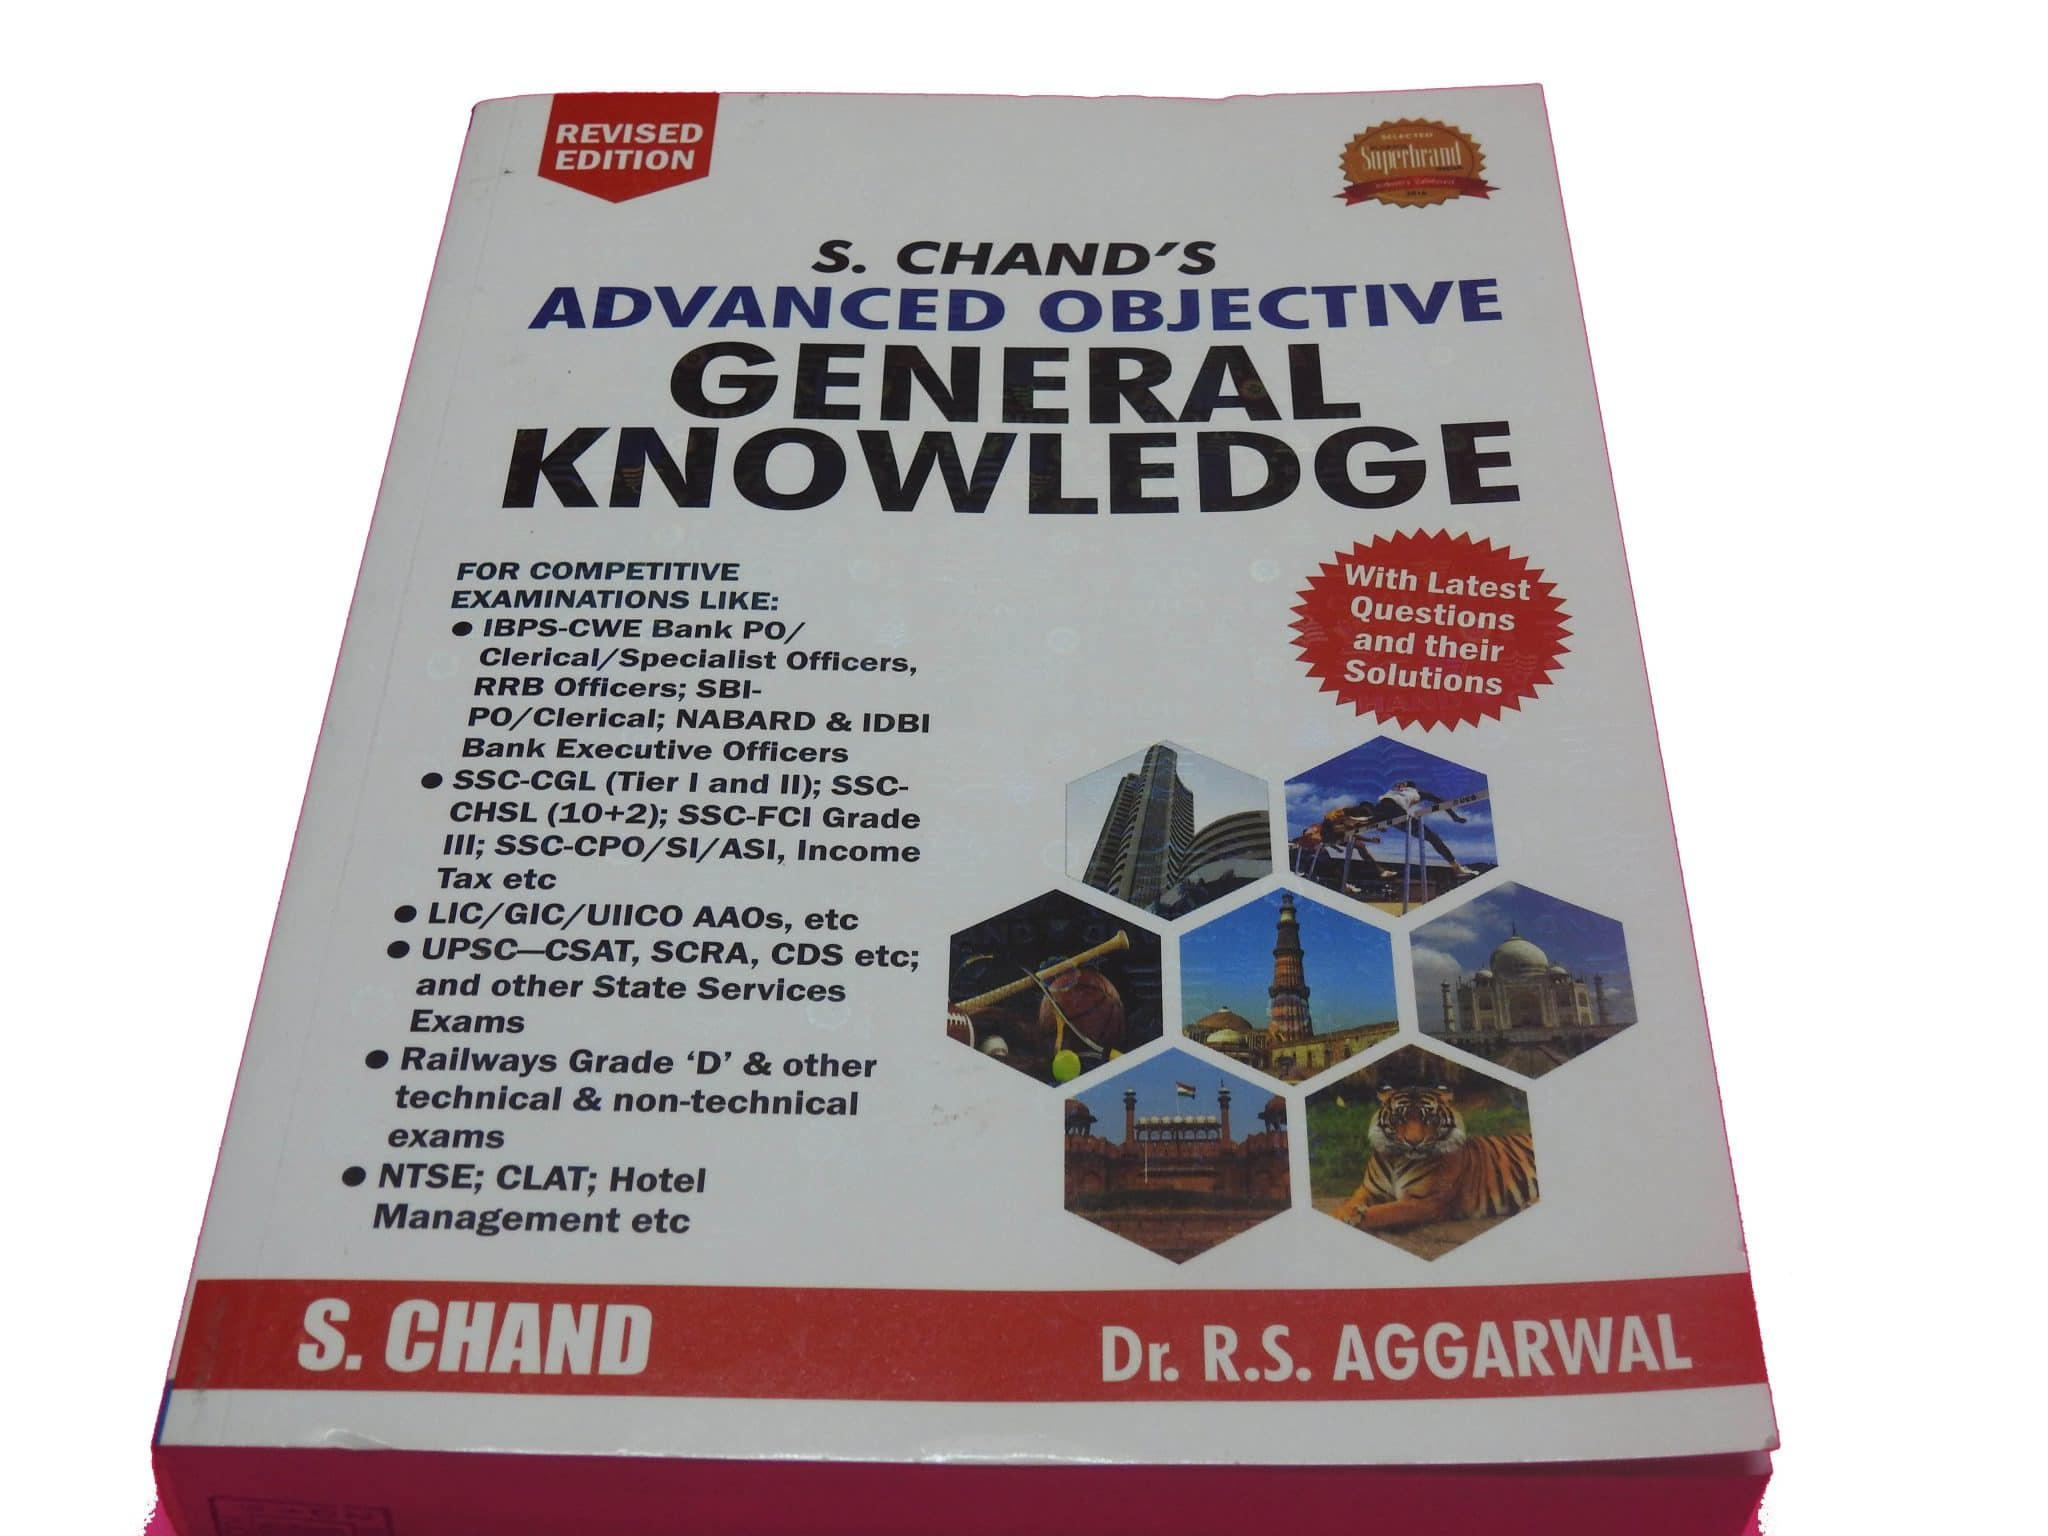 Advance objective general knowledge by Dr. R S Aggarwal